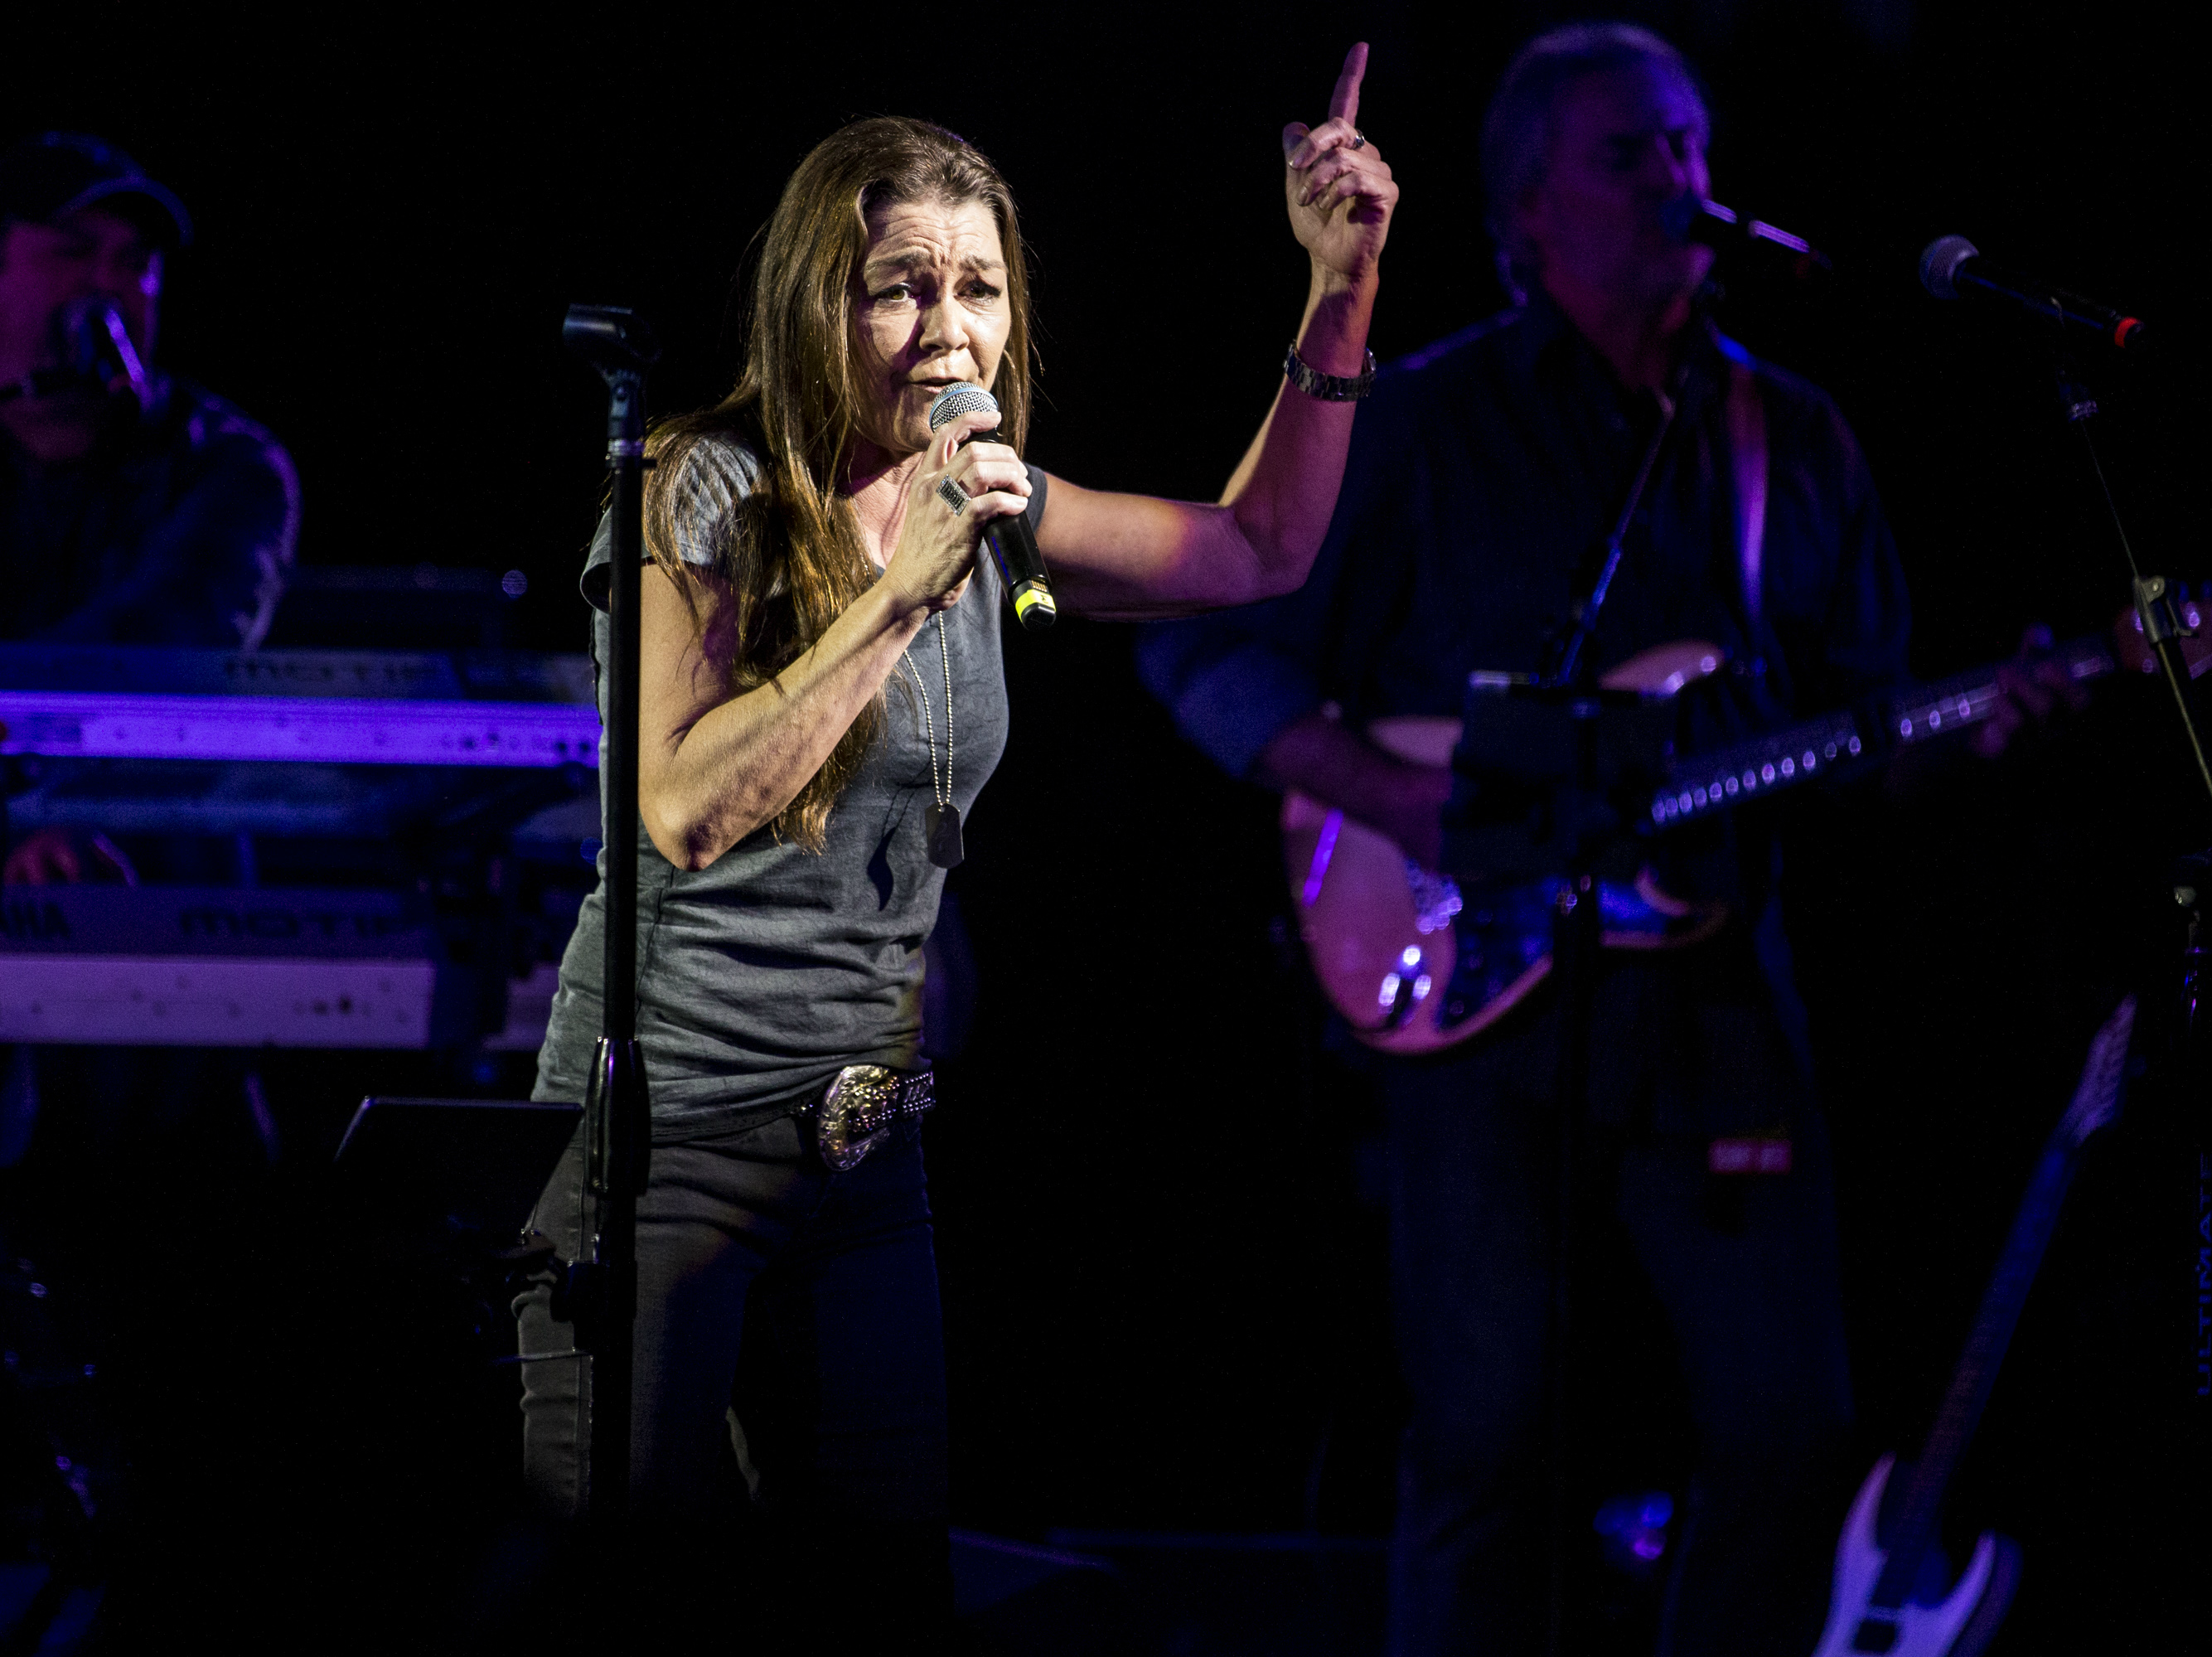 Gretchen Wilson performs during the 17th annual Alice Cooper's Christmas Pudding concert, Dec. 8, 2018, at Celebrity Theatre in Phoenix.